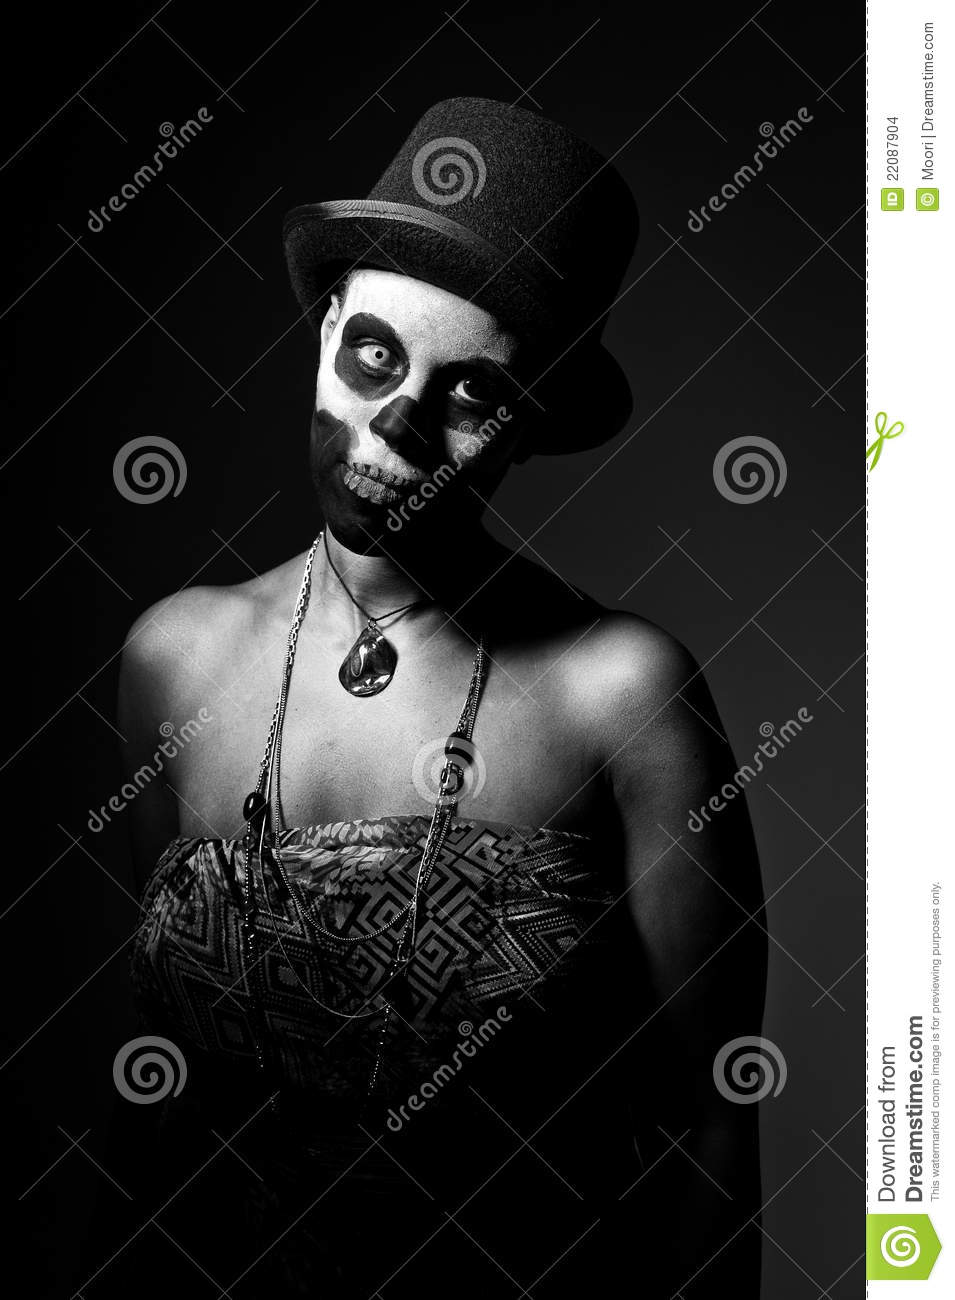 Voodoo priestess stock photo  Image of priest, make, deadman